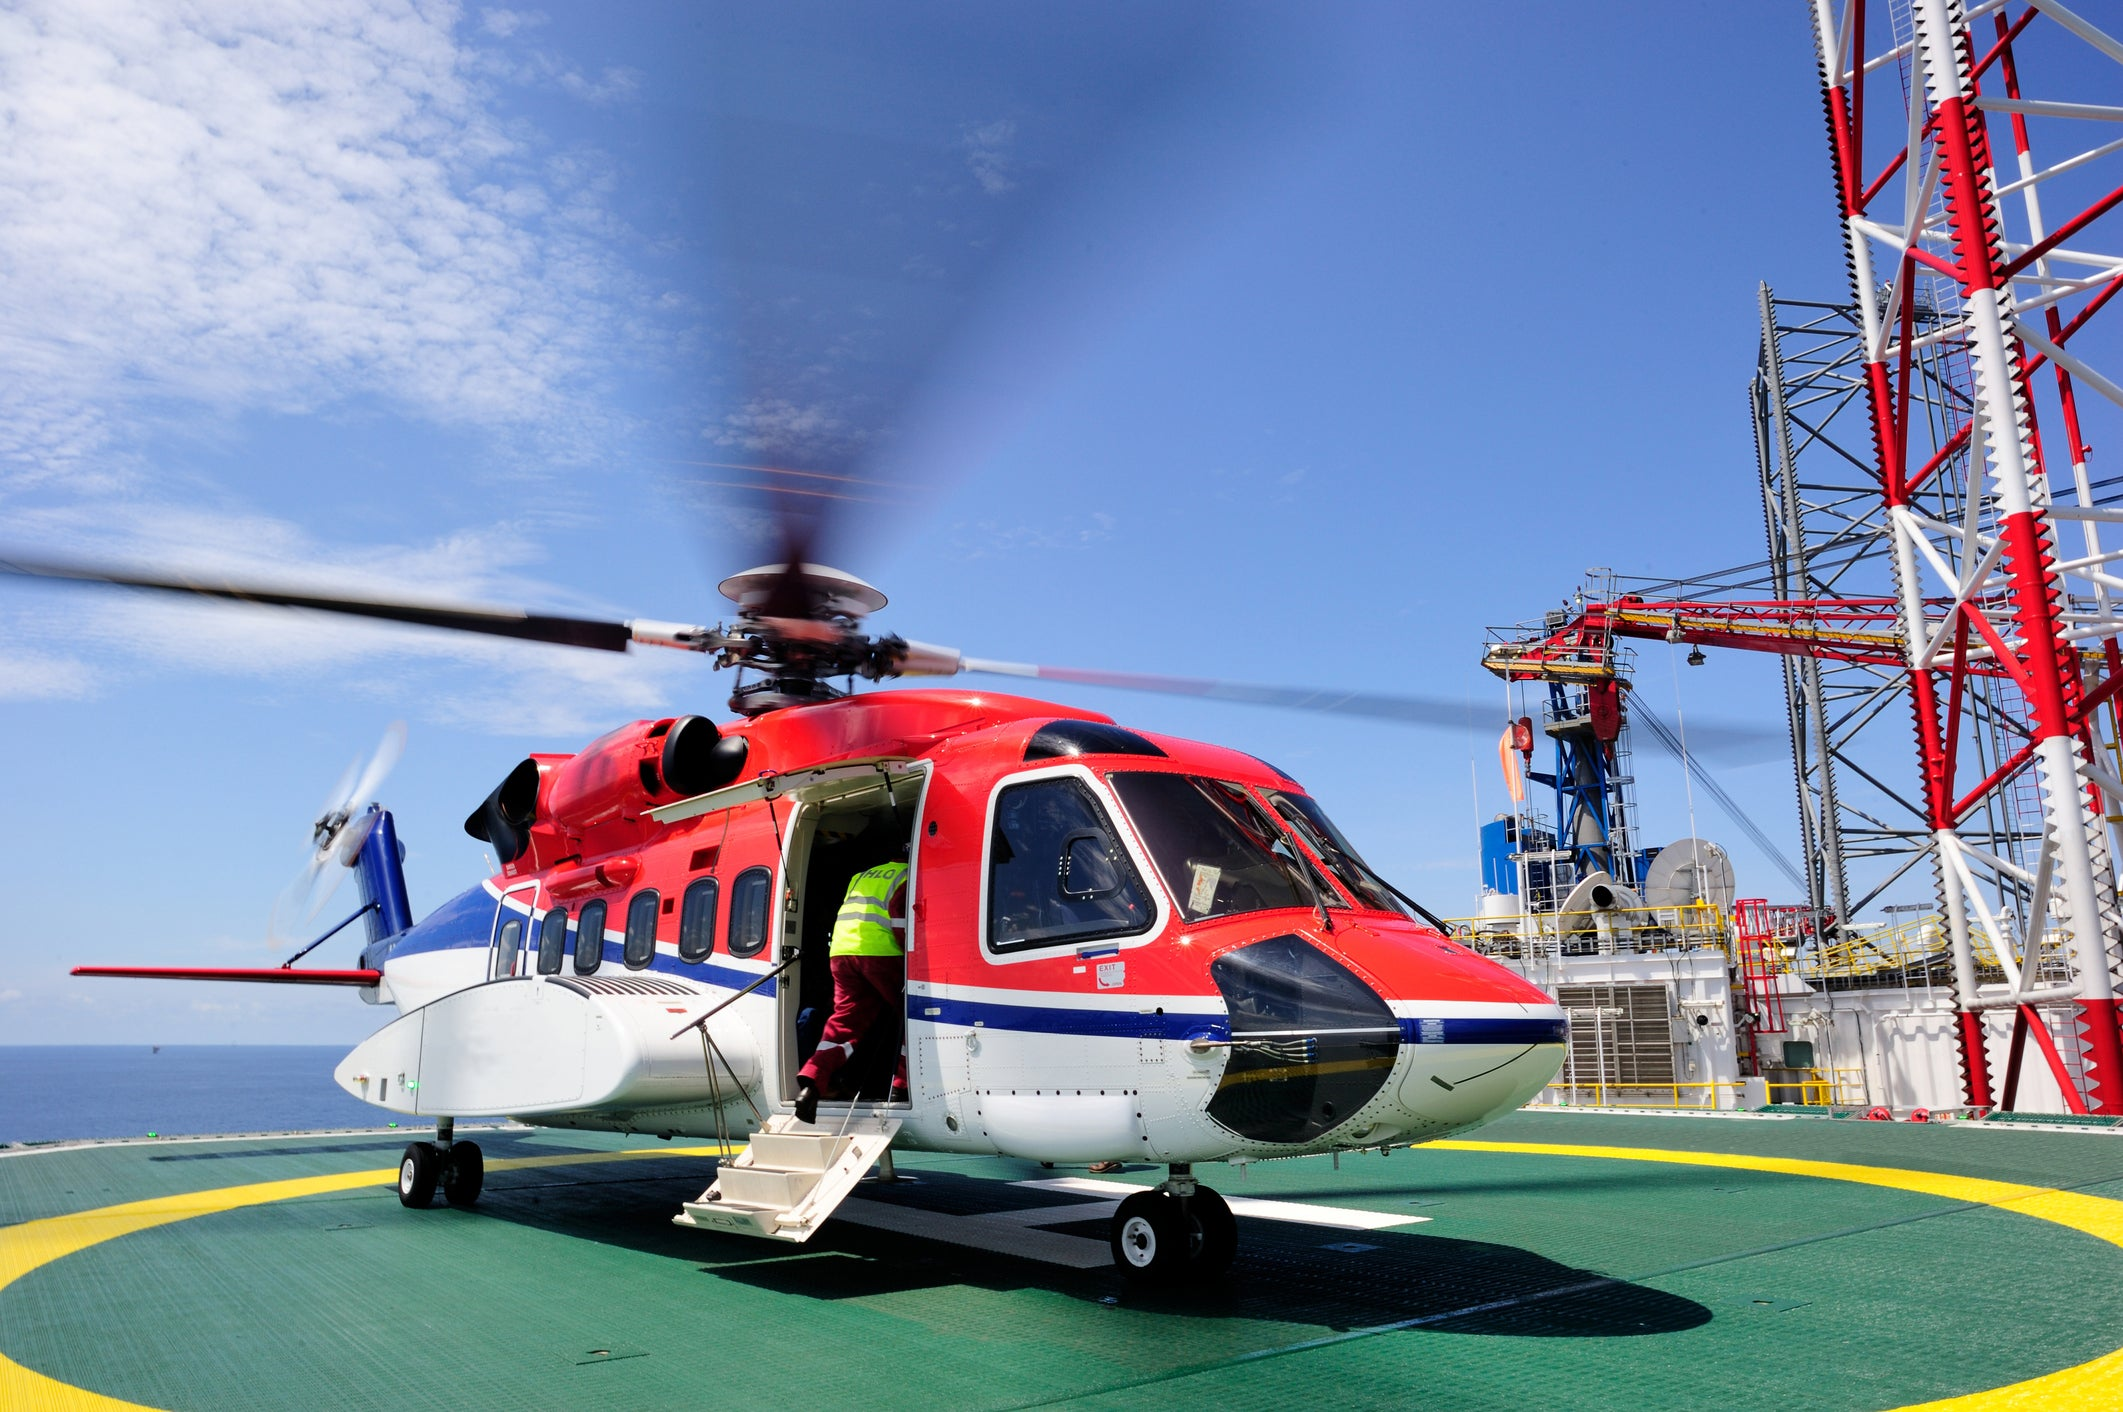 Helicopter on offshore platform.